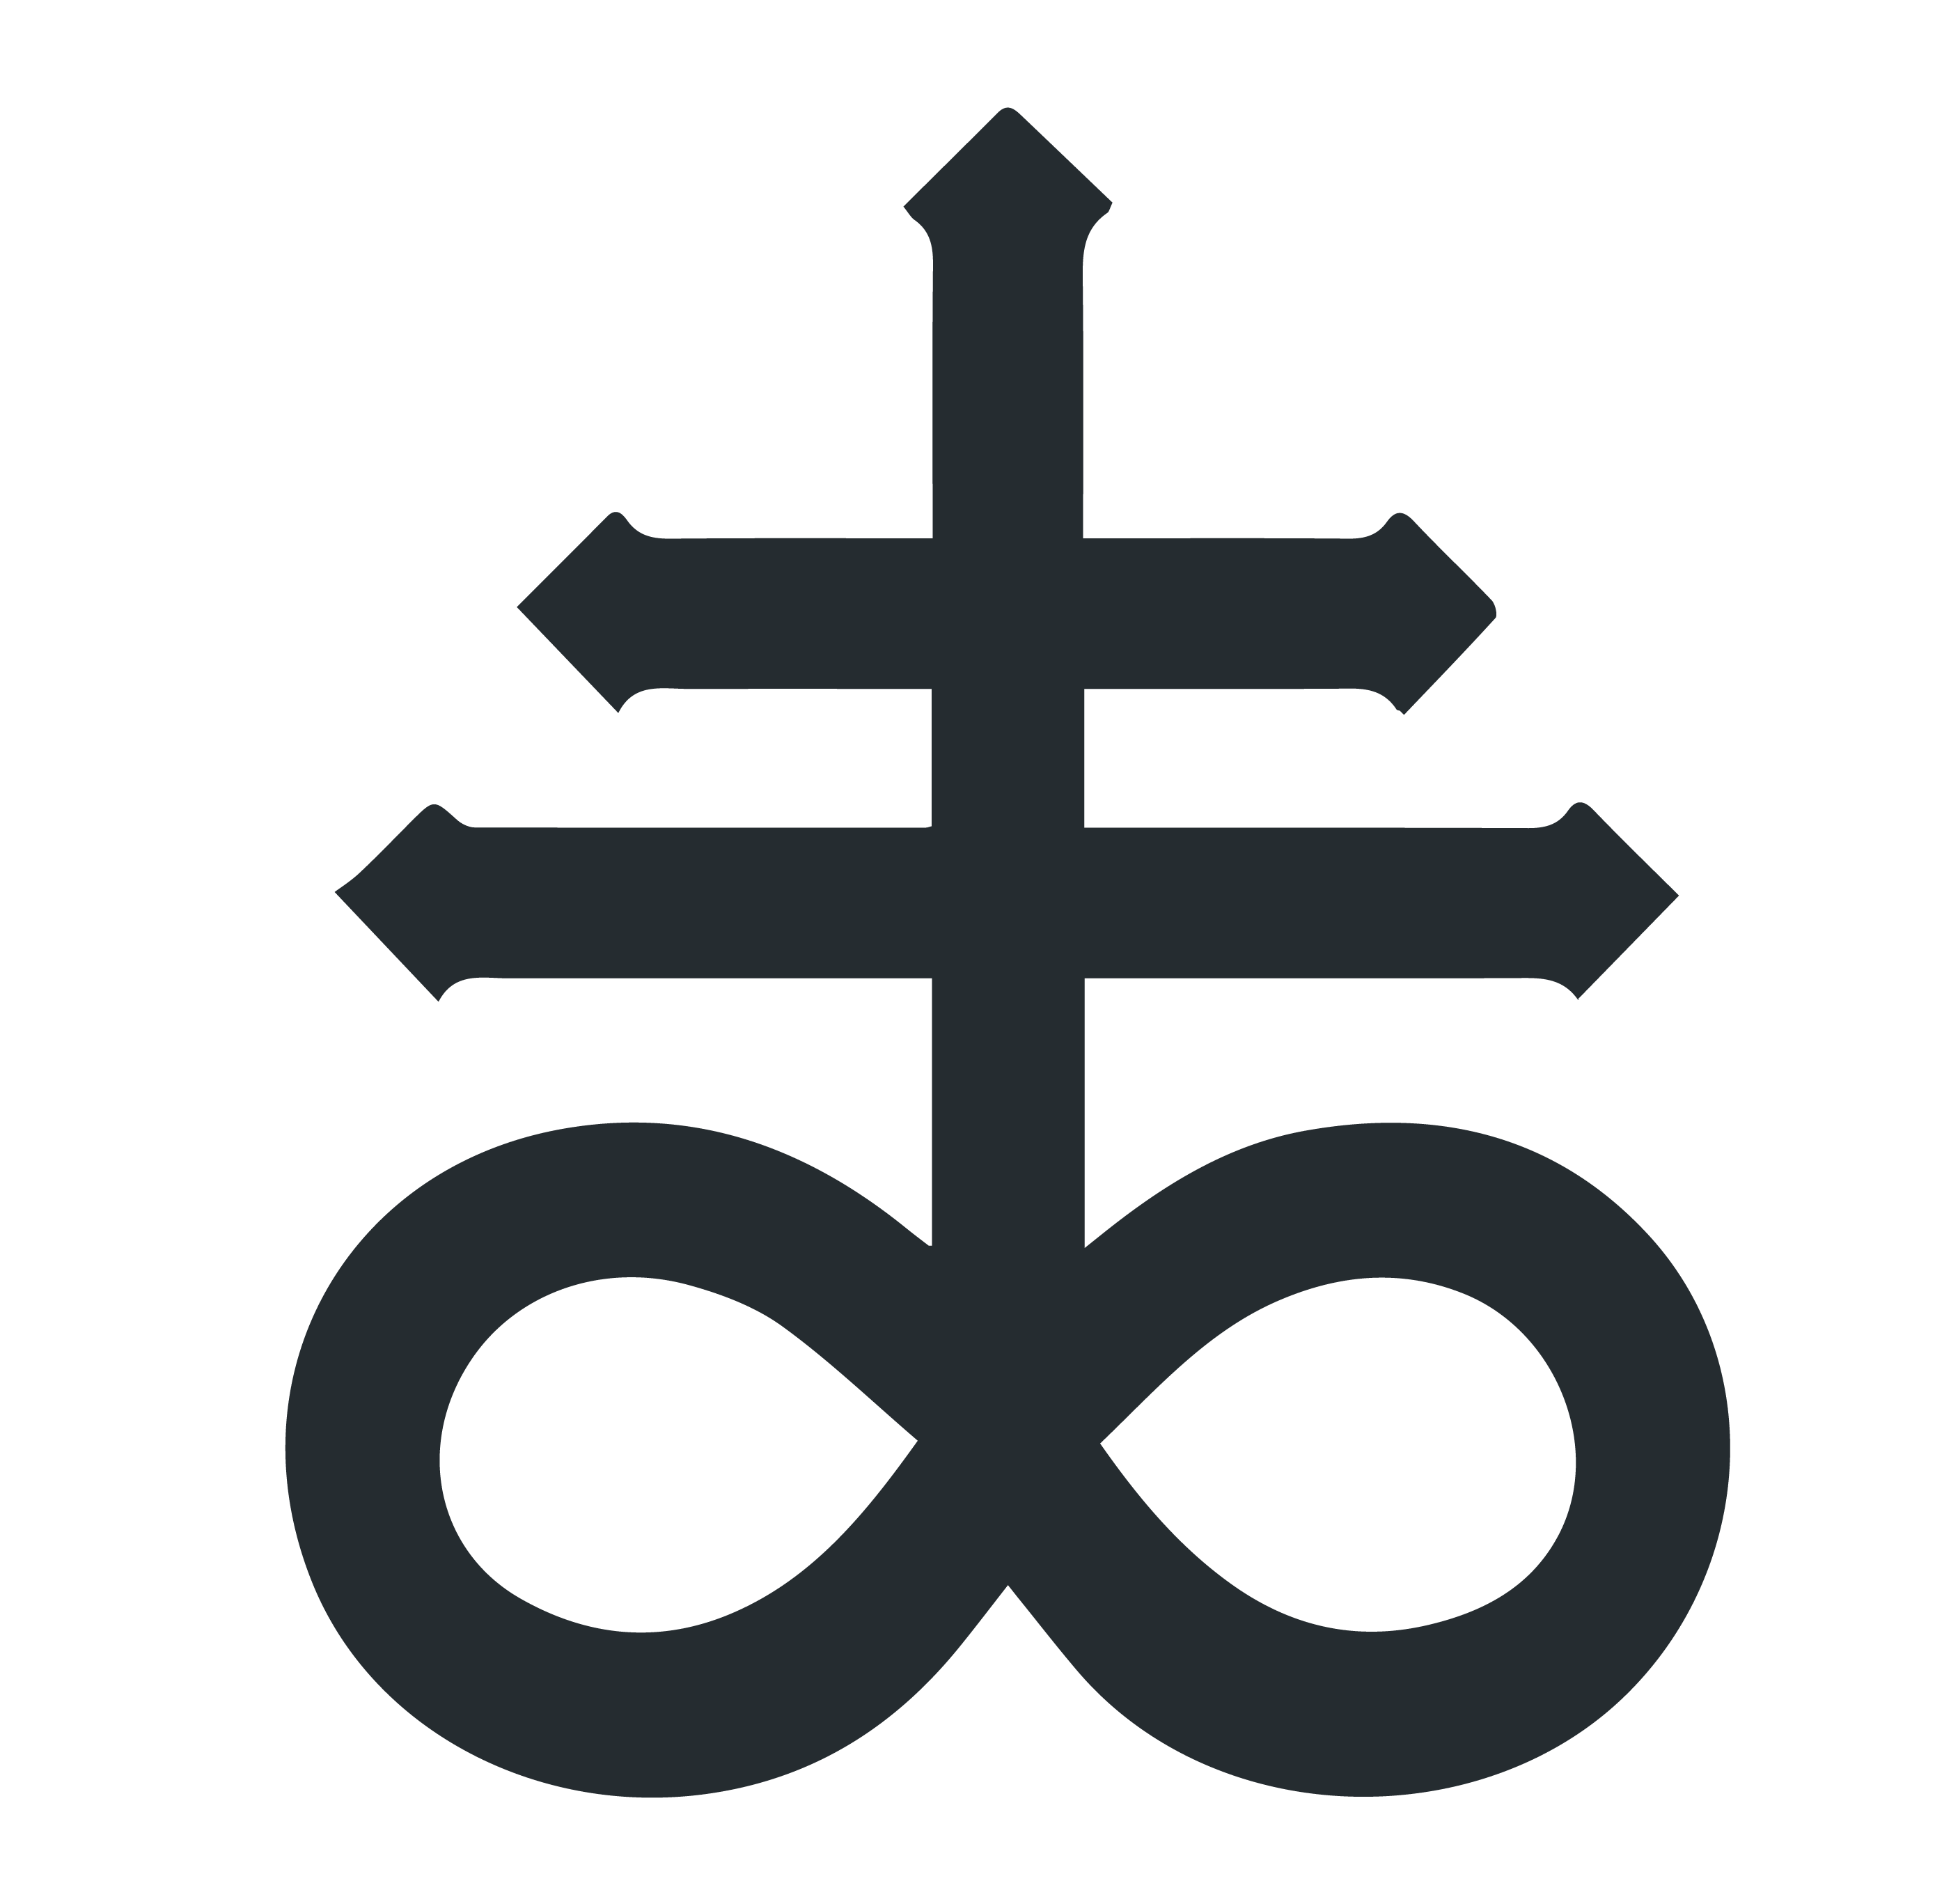 The Leviathan Cross Satans Cross Symbol And Its Meaning